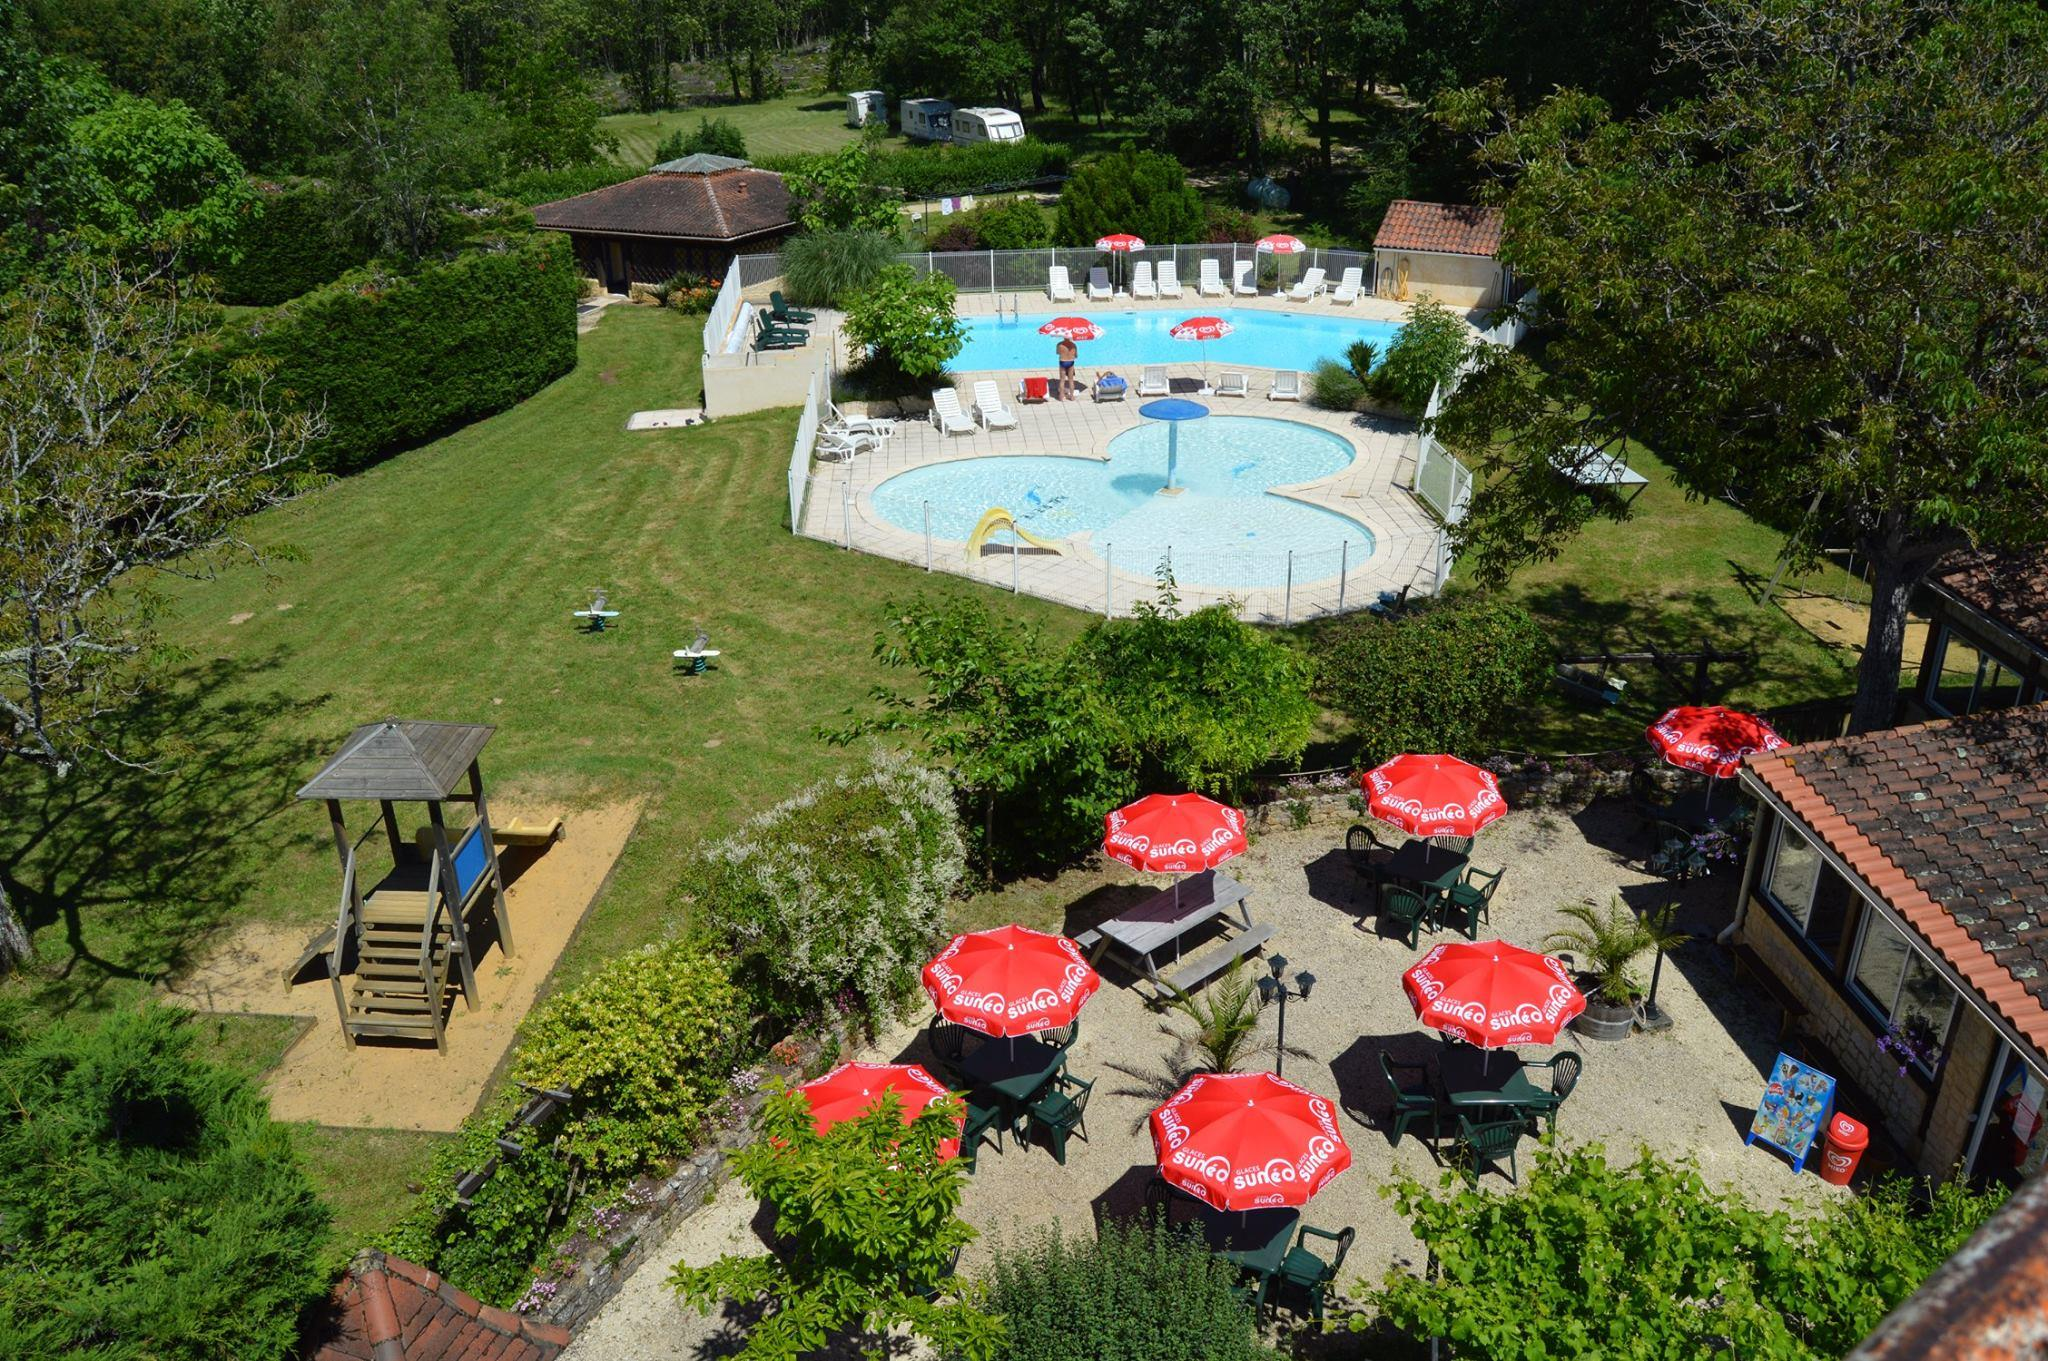 Establishment Camping Le Rêve - Le Vigan